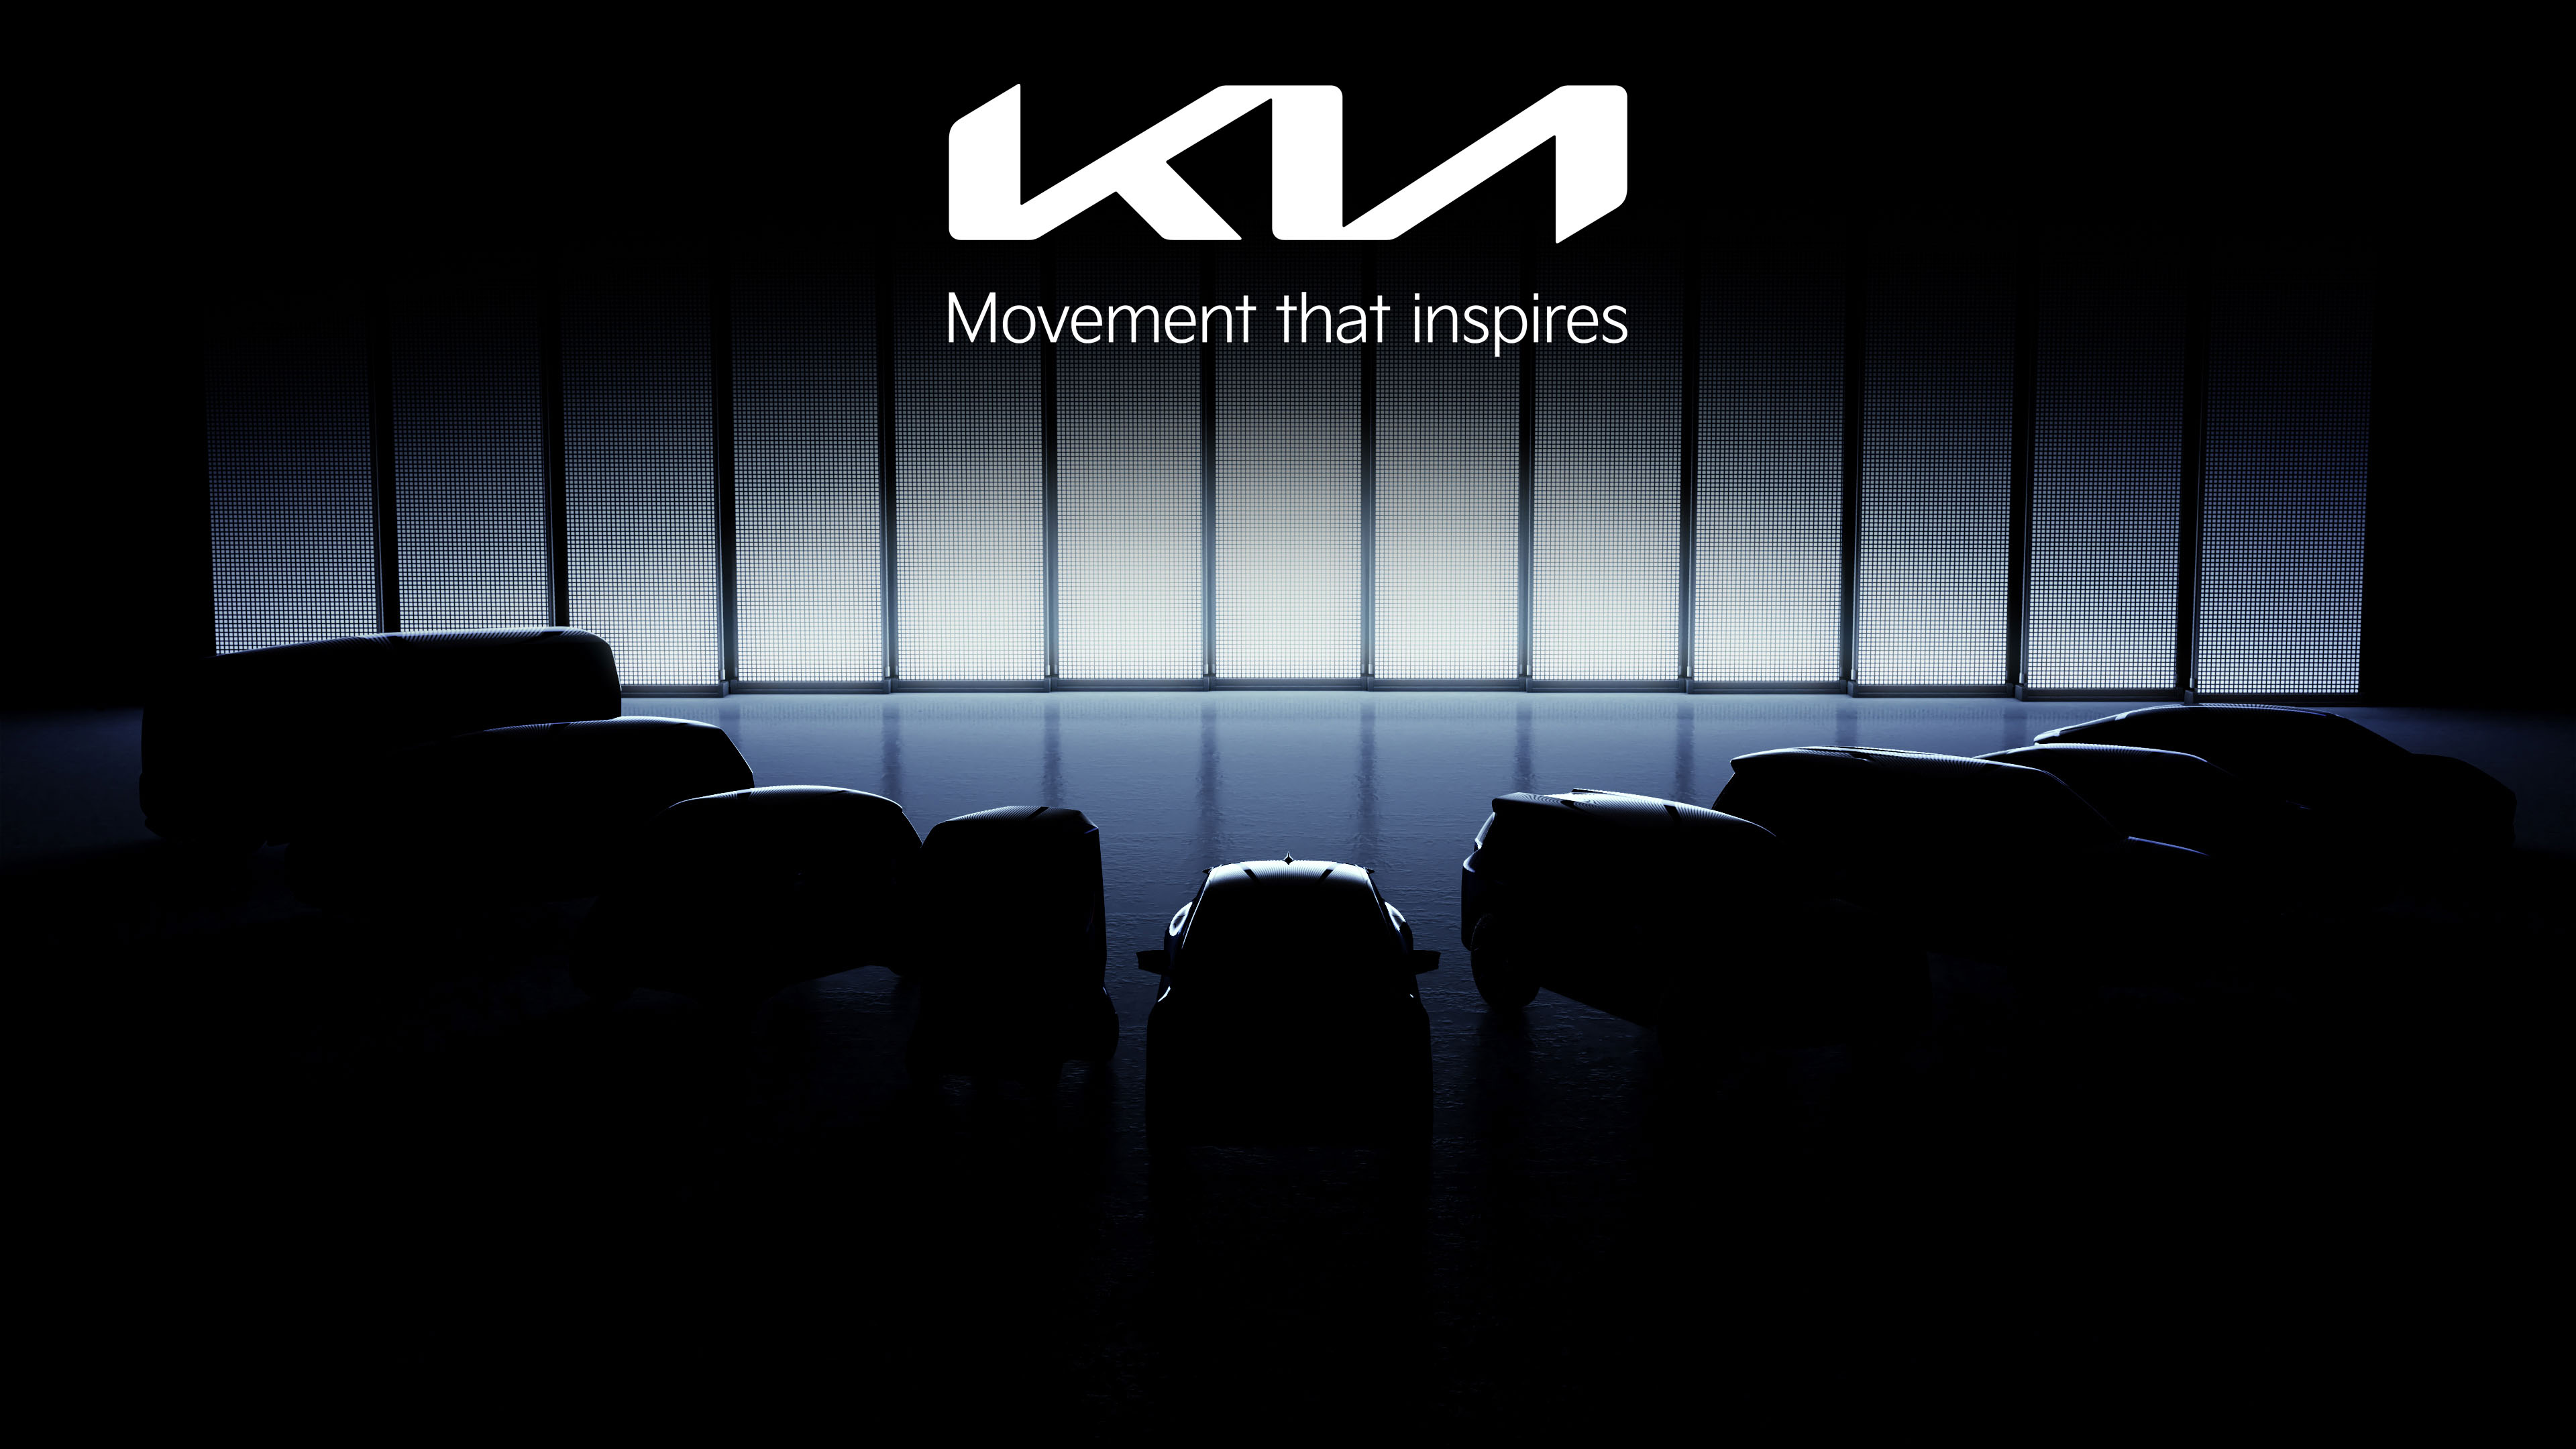 'Movement that inspires' - Kia to launch new brand positioning in NZ